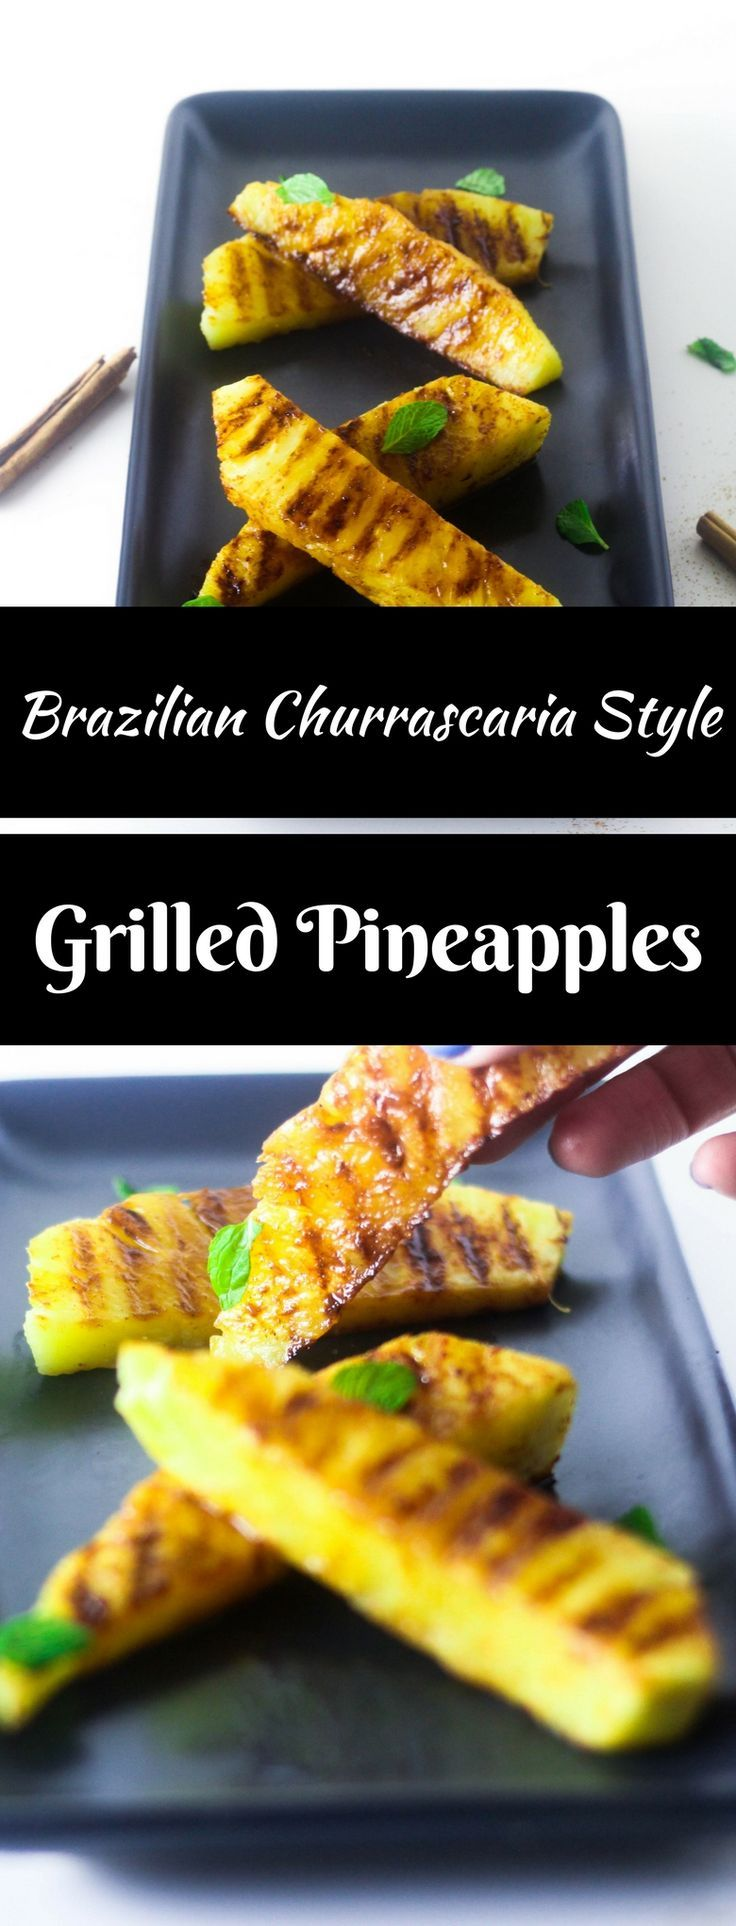 An easy grilled summer dessert that is popular in Brazilian churrascaria. All you need are pineapple slices, cinnamon and sugar to grill the best summer dessert. Grill or BBQ these pineapples today for juicy and sweet pineapple slices to please everyone.